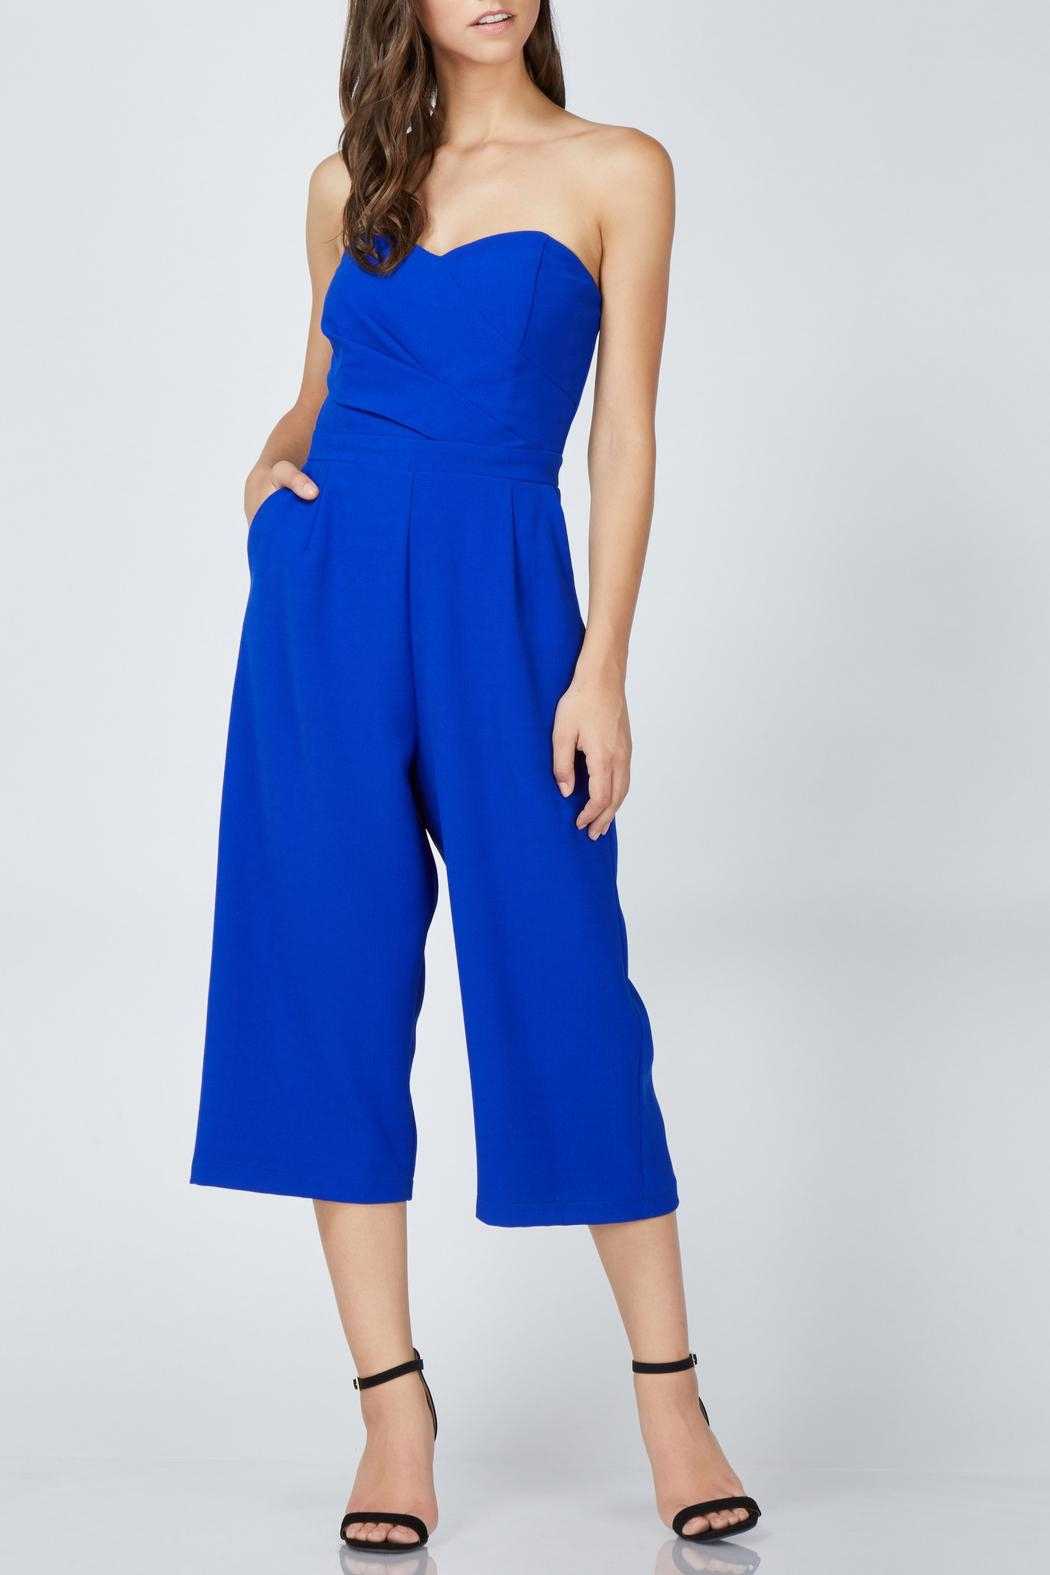 Adelyn Rae Julian Strapless Jumpsuit - Side Cropped Image